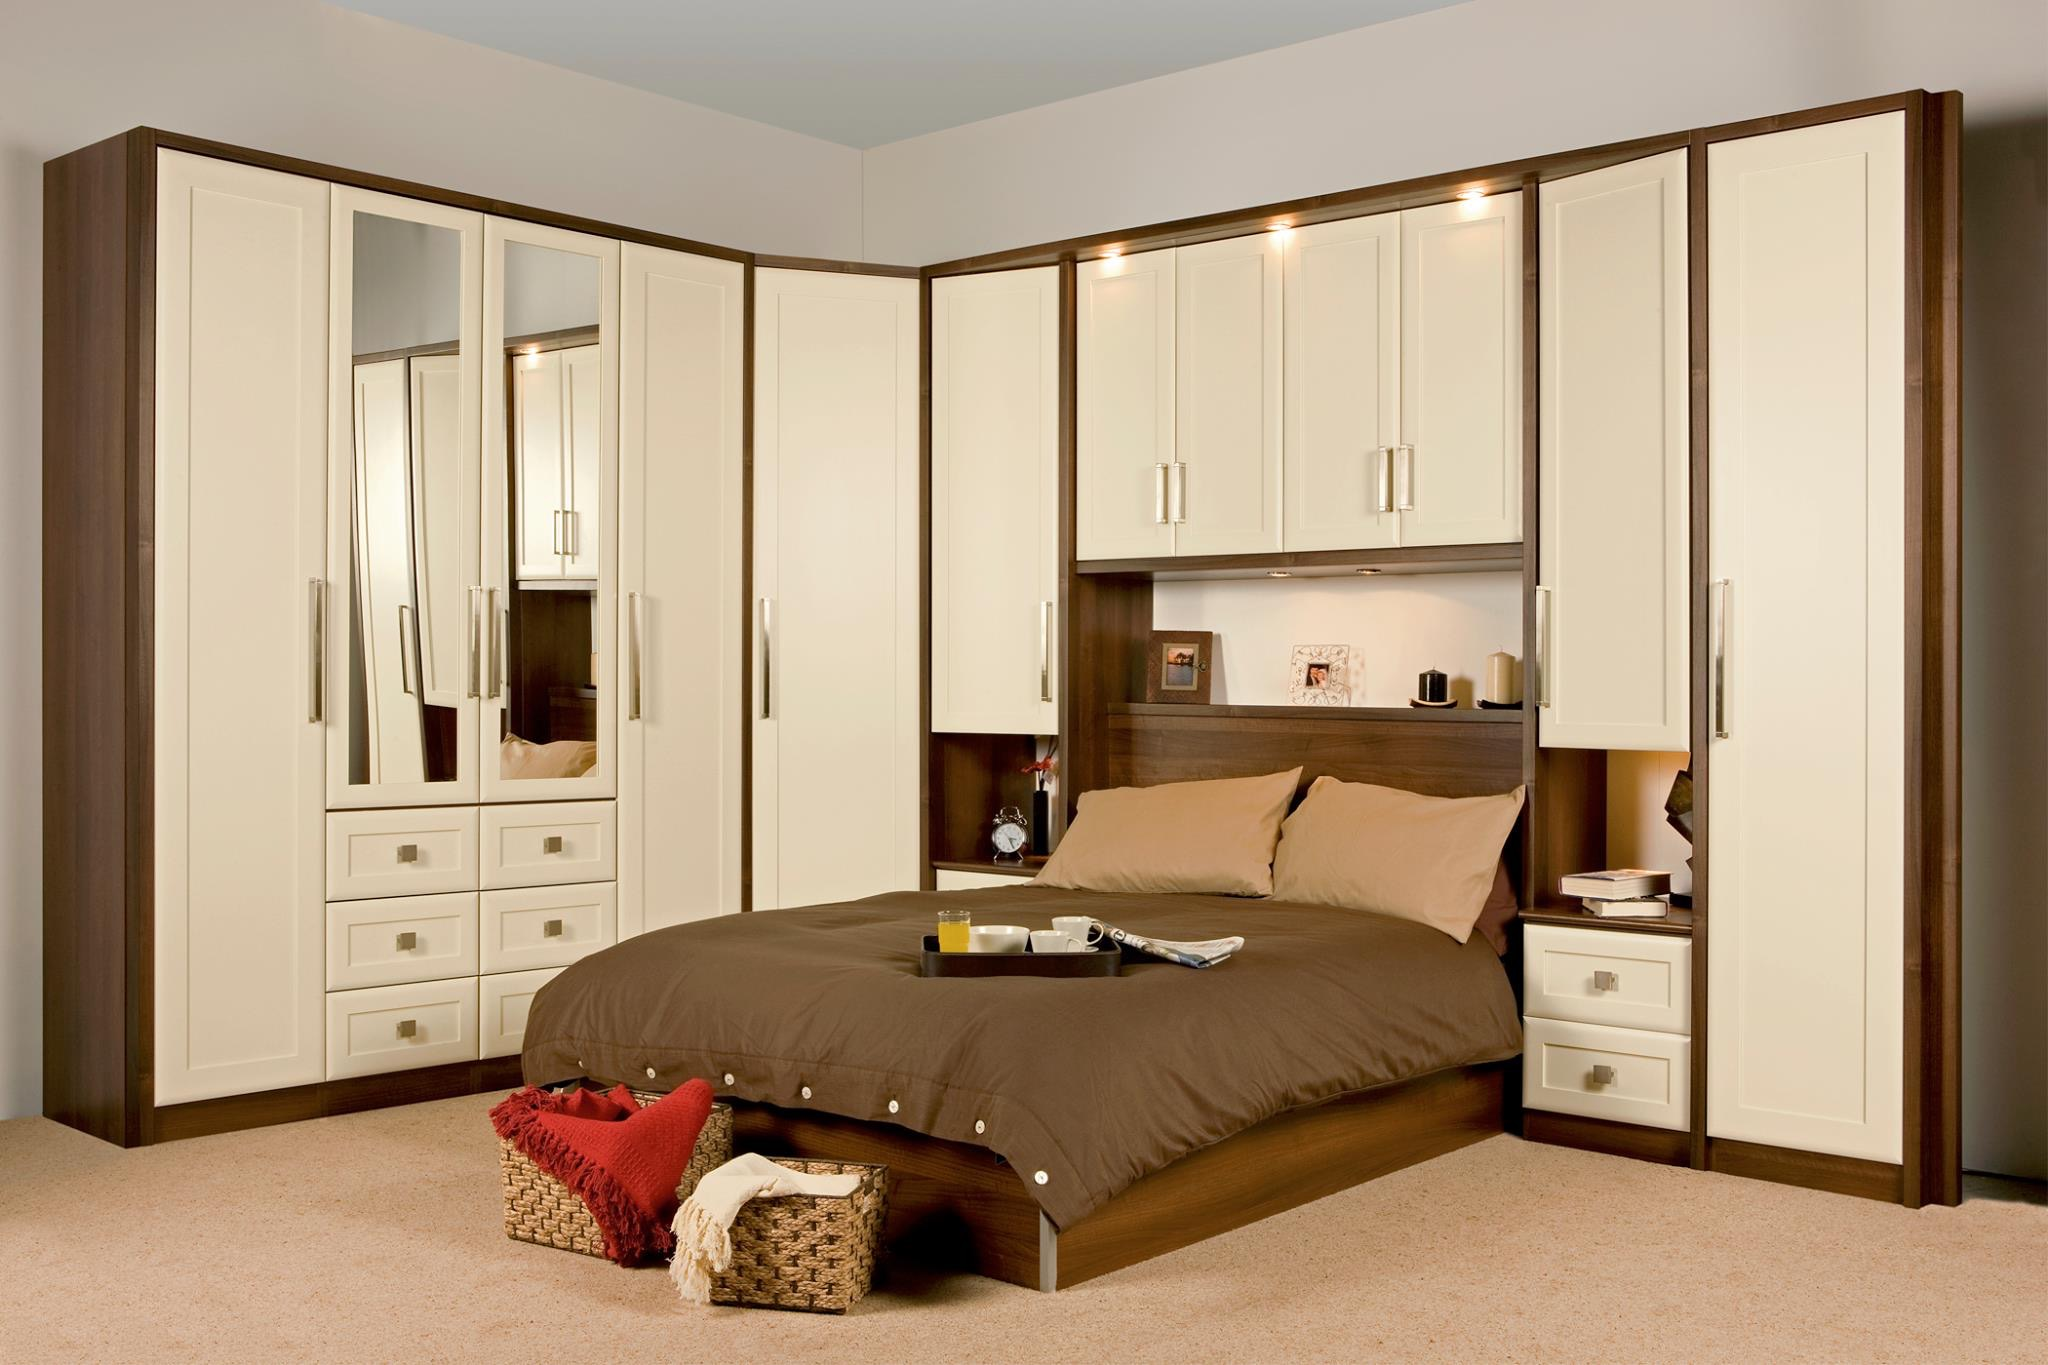 Jws wardrobes fitted furniture jws wardrobes for Bedroom designs uk